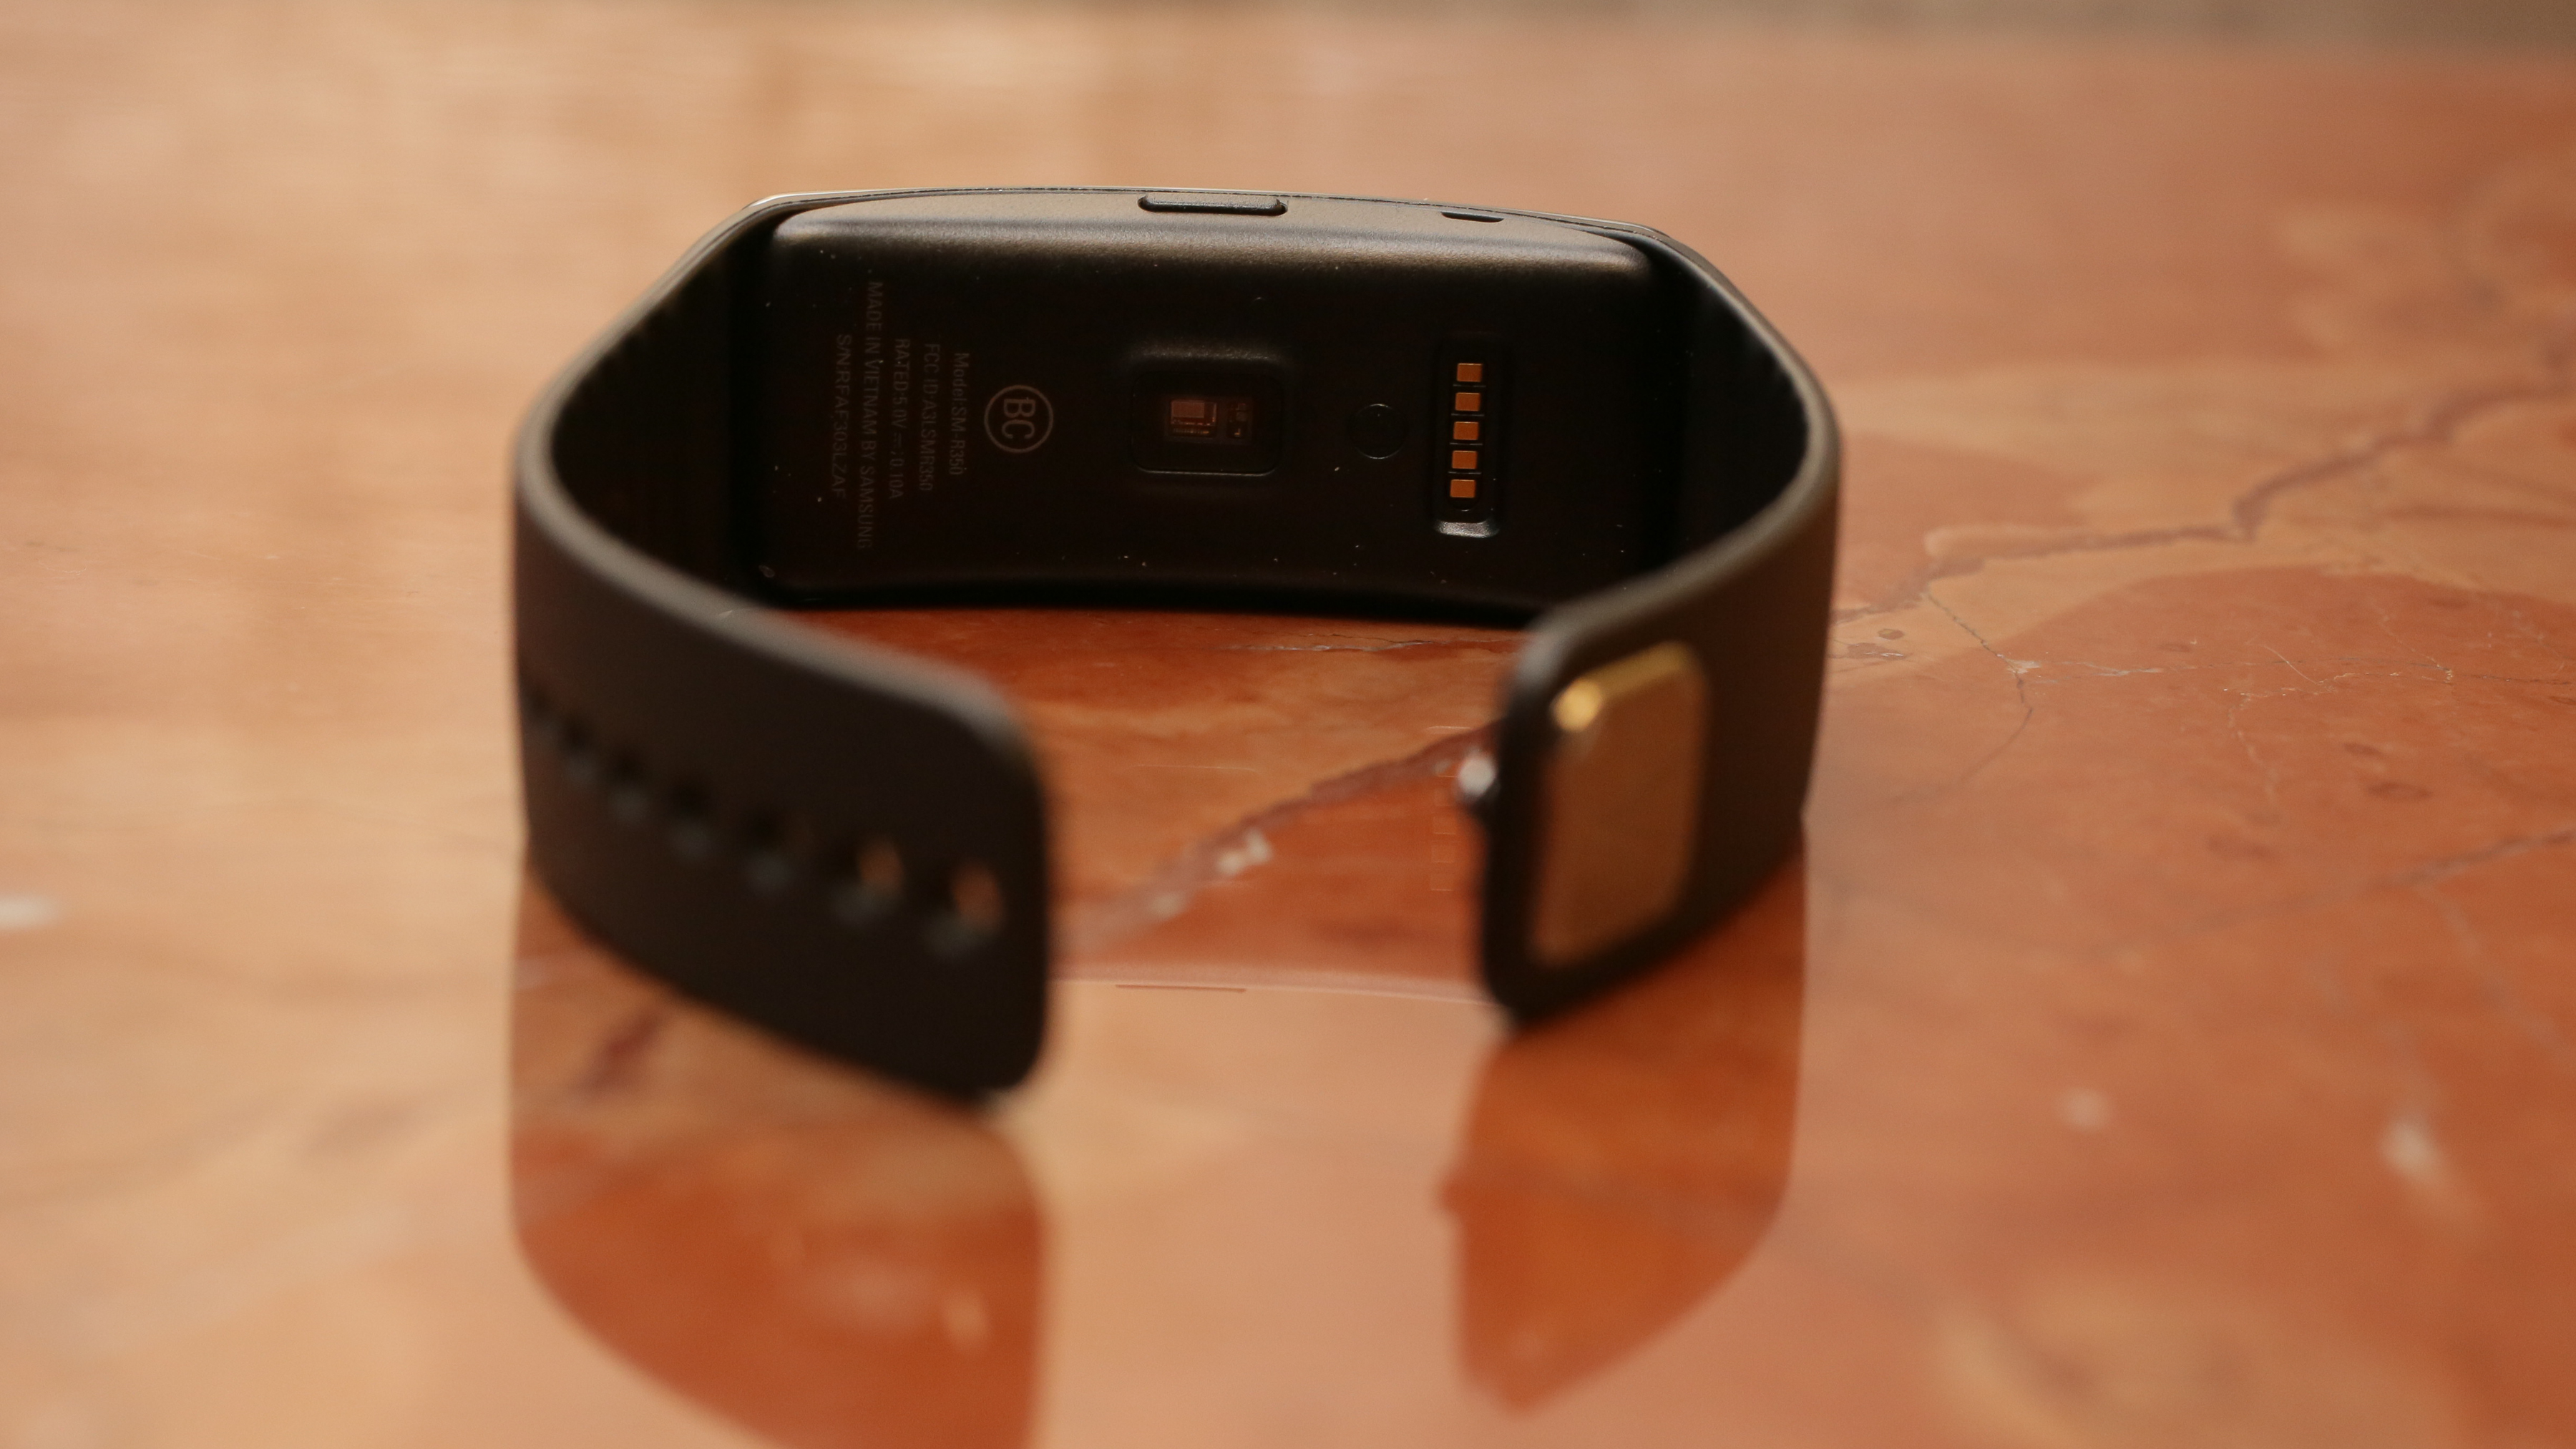 samsung-galaxy-gear-fit-product-photos-02.jpg